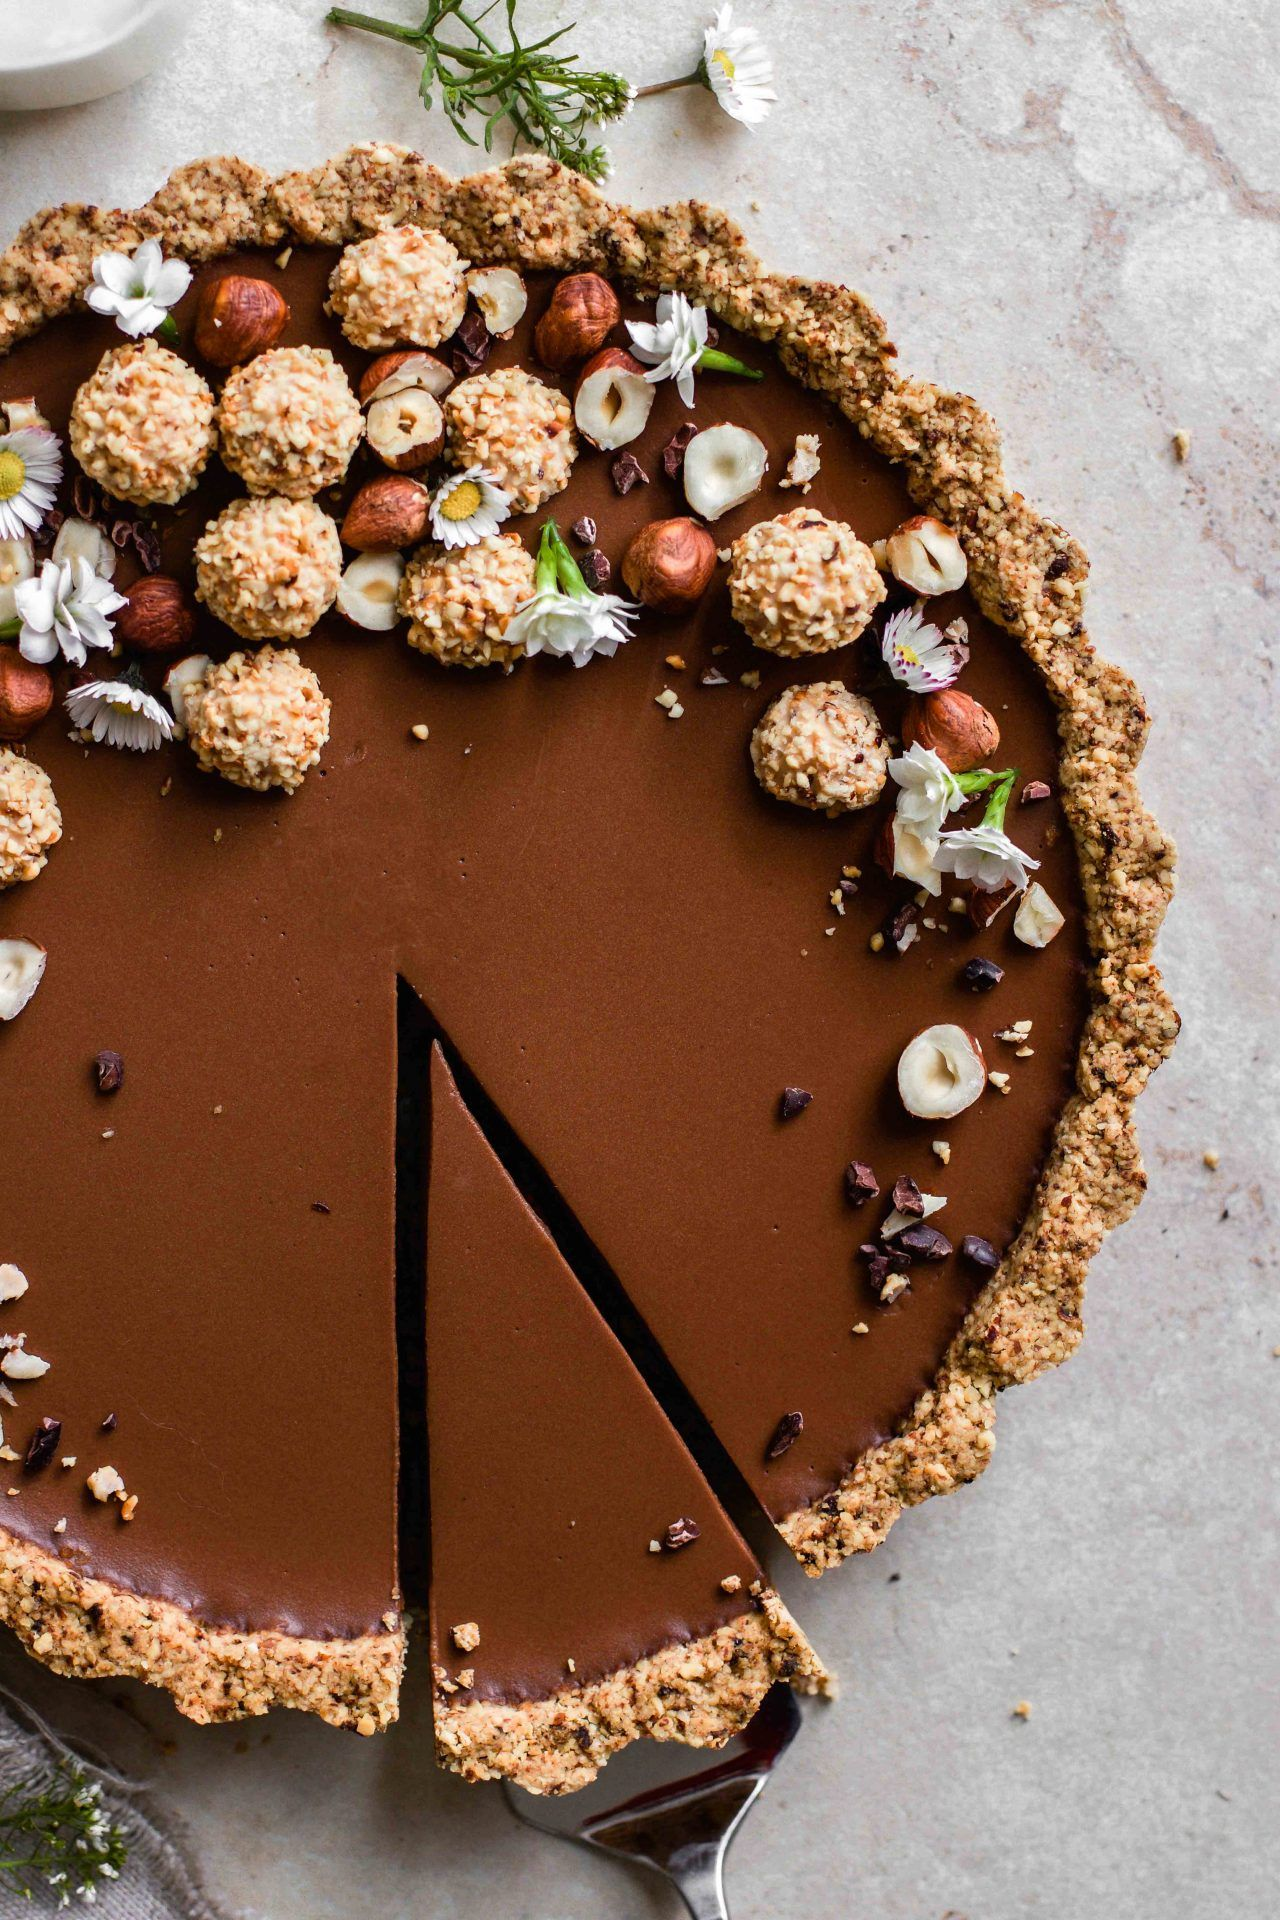 Melt-in-your-mouth Chocolate Tart #desertlife